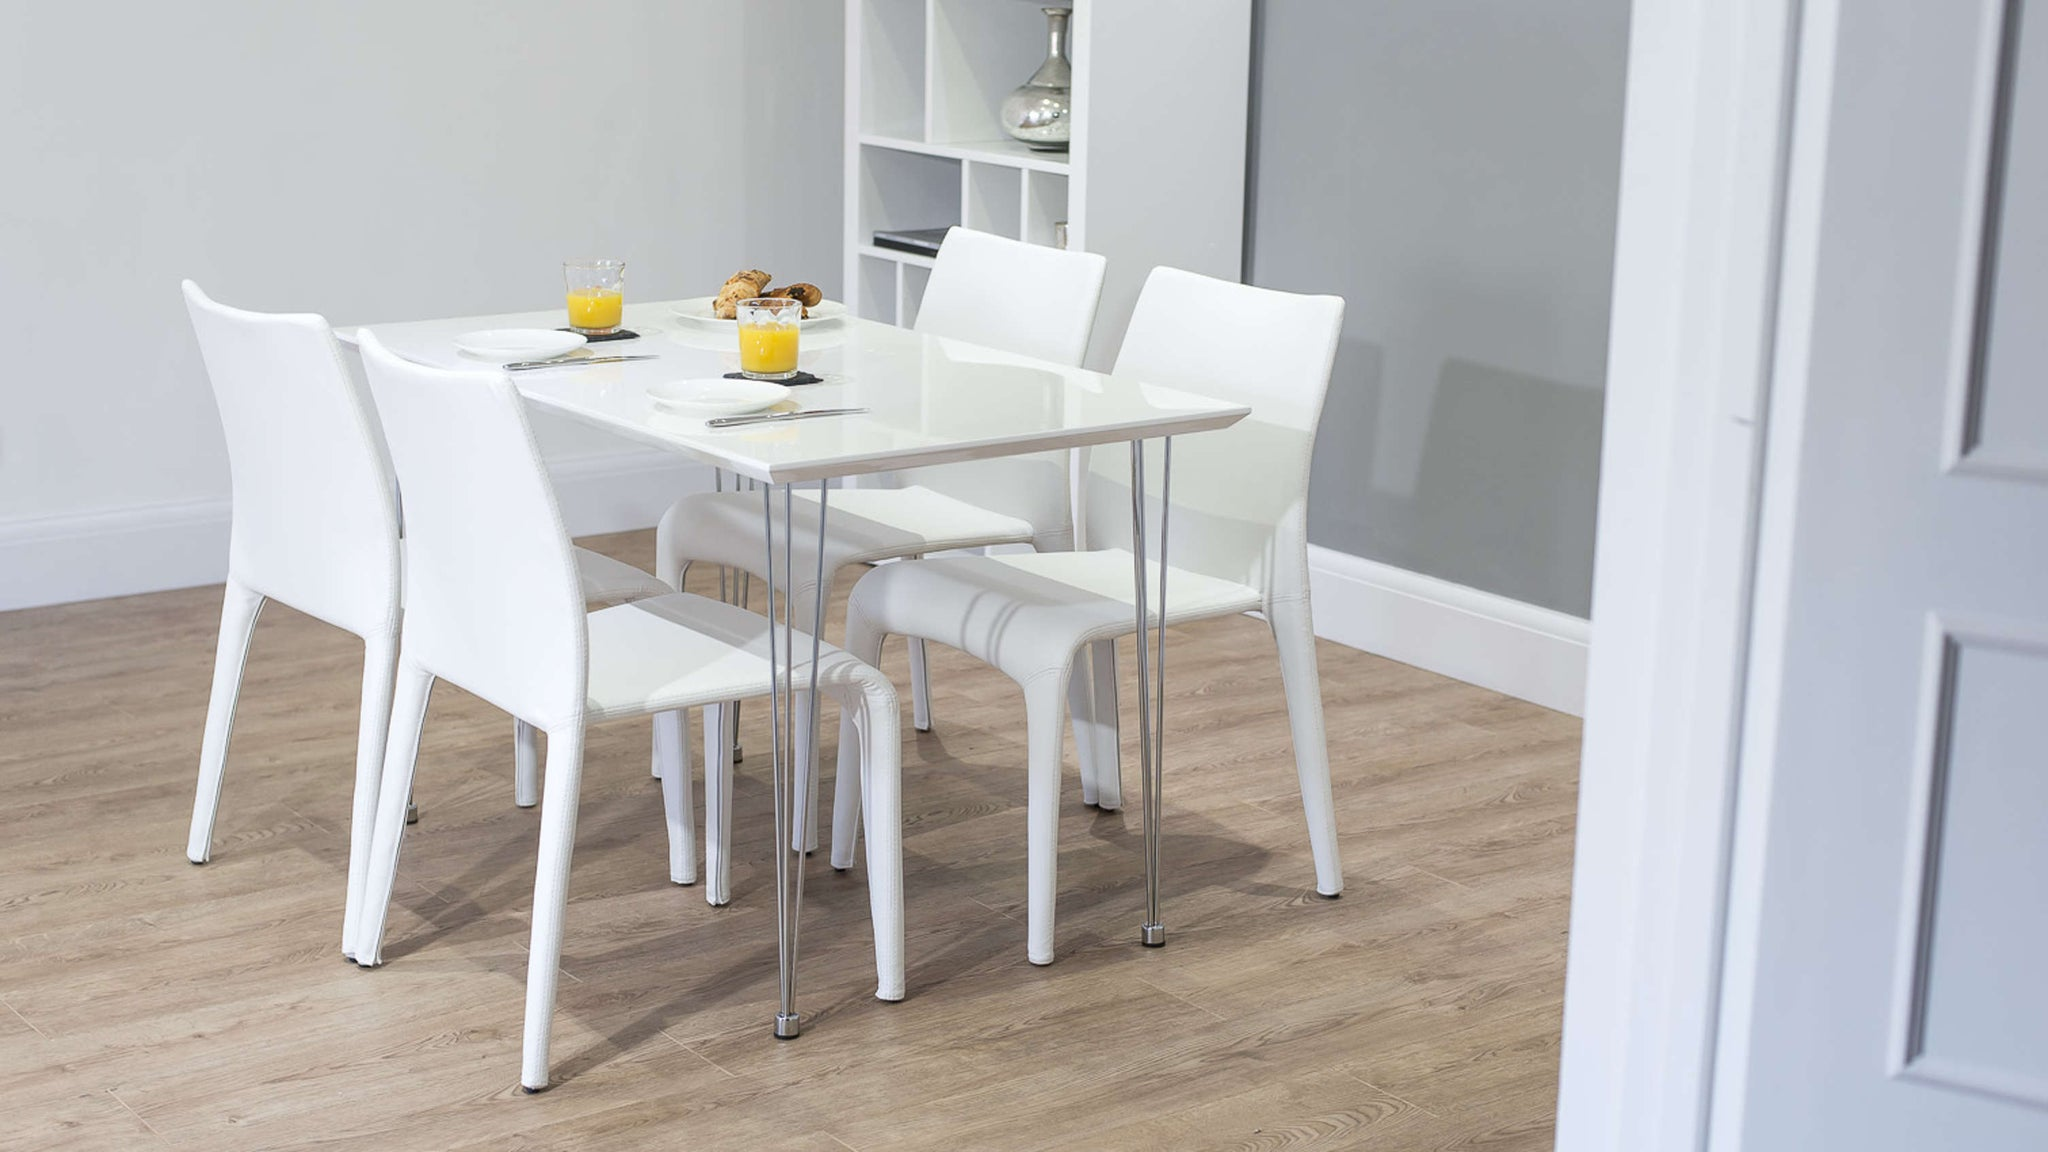 Modern White Stackable Dining Chairs and 4 Seater Dining Table